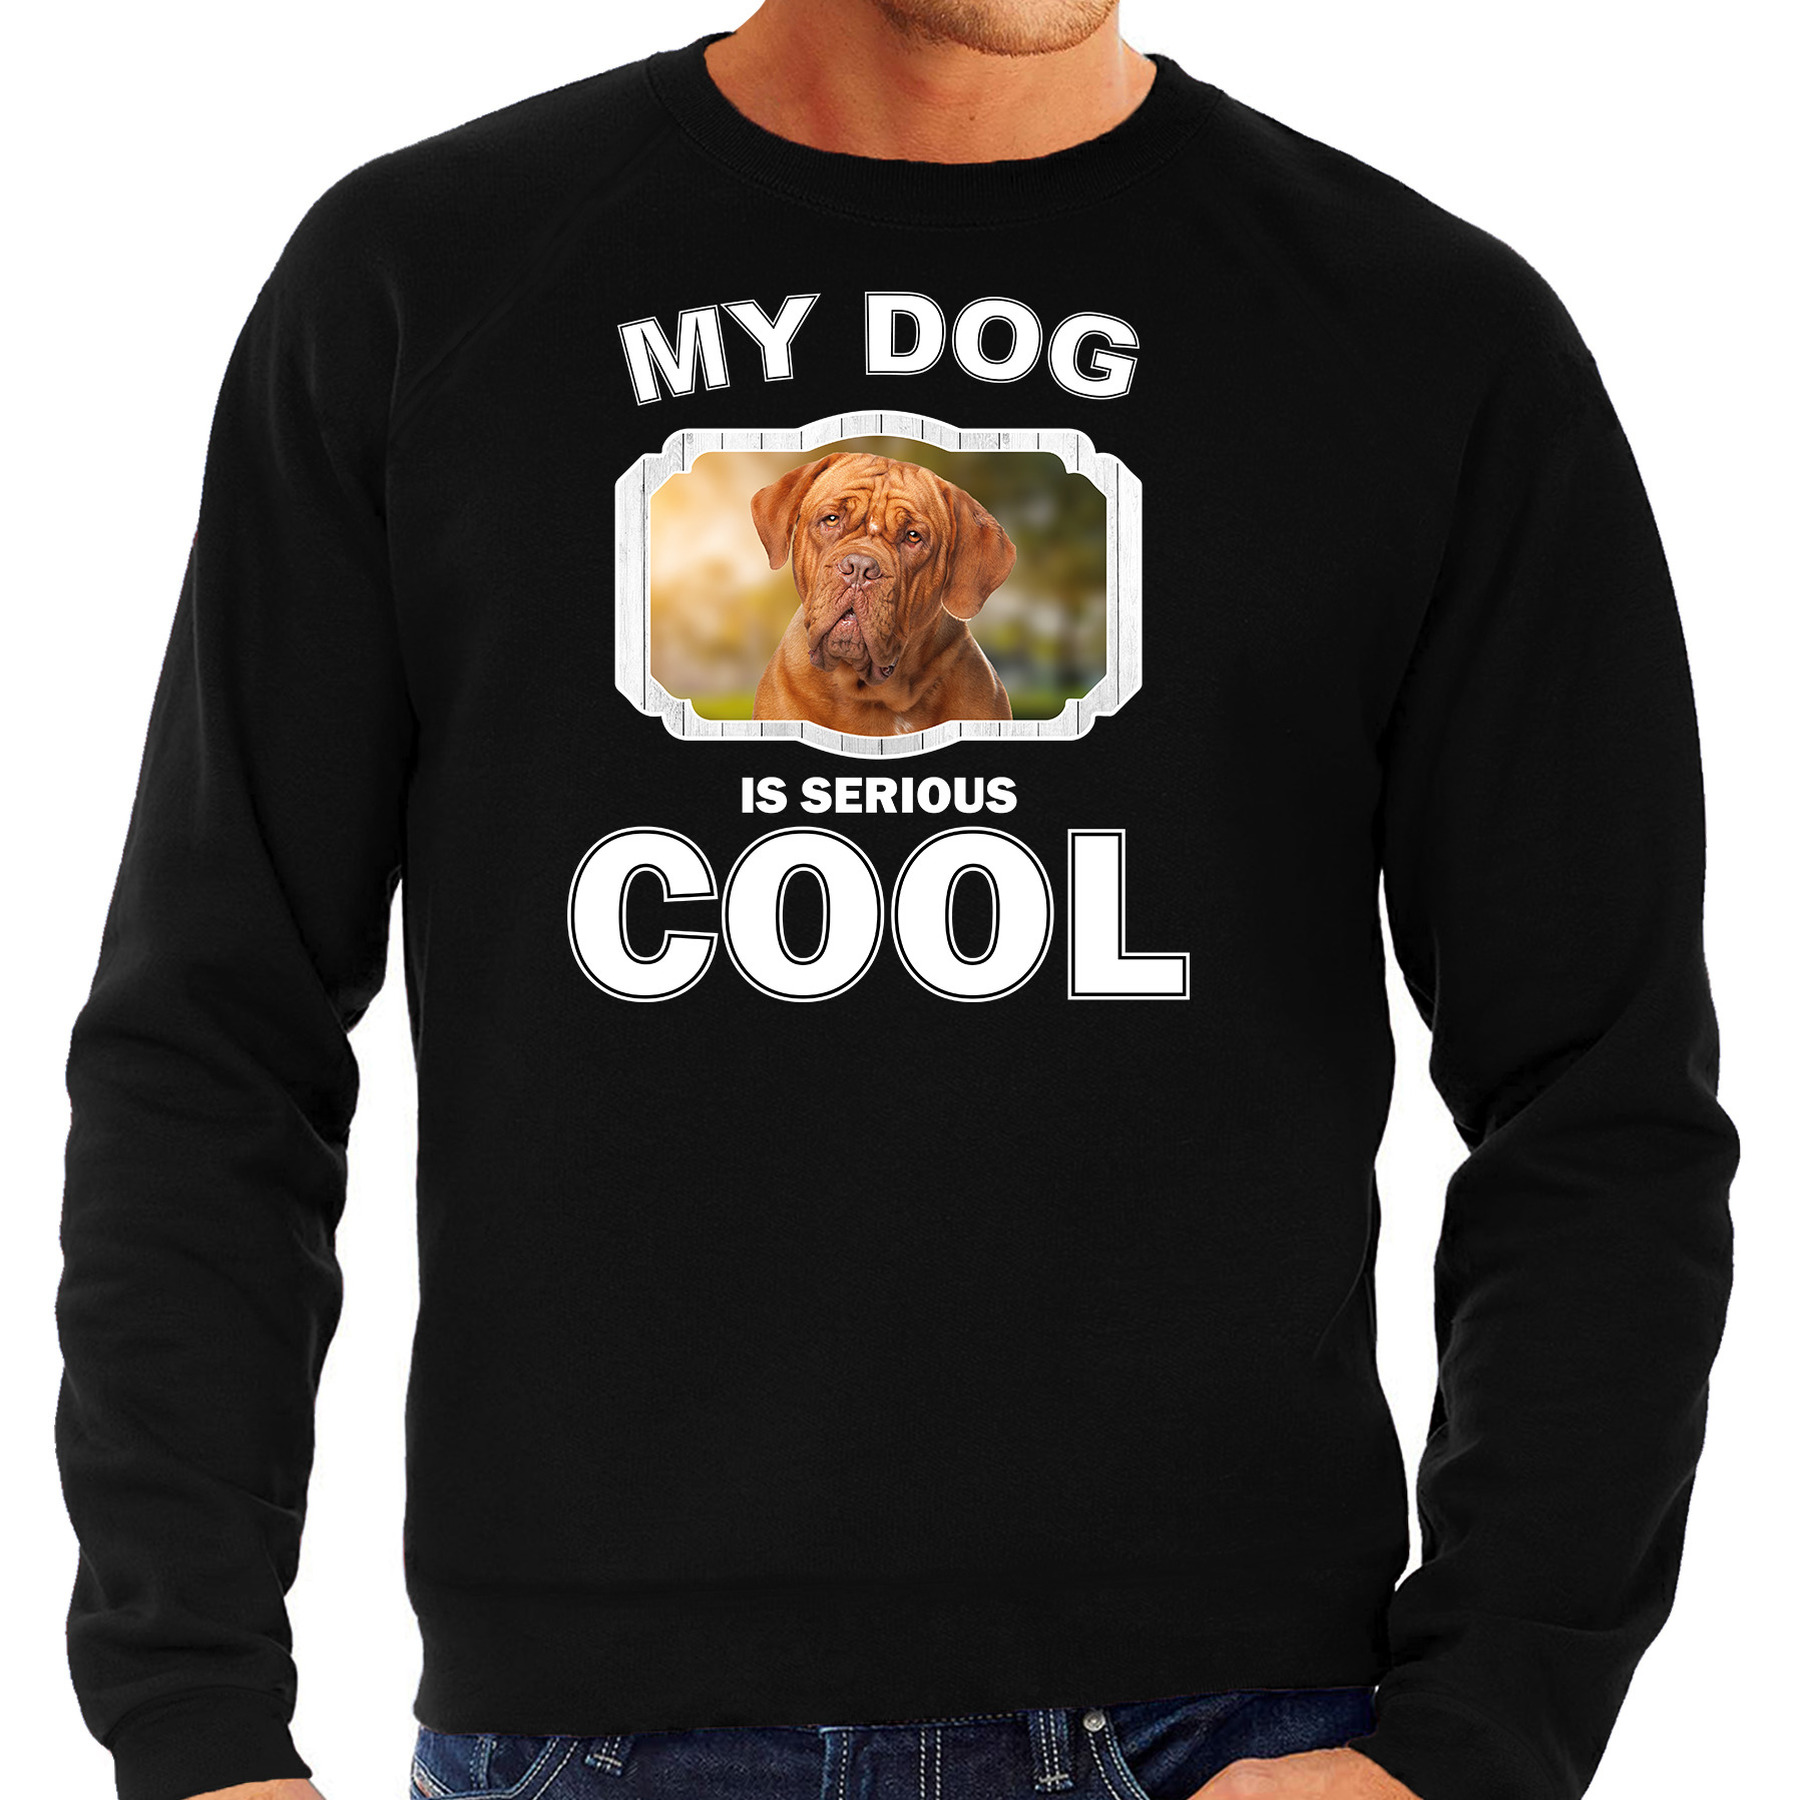 Franse mastiff honden sweater - trui my dog is serious cool zwart voor heren